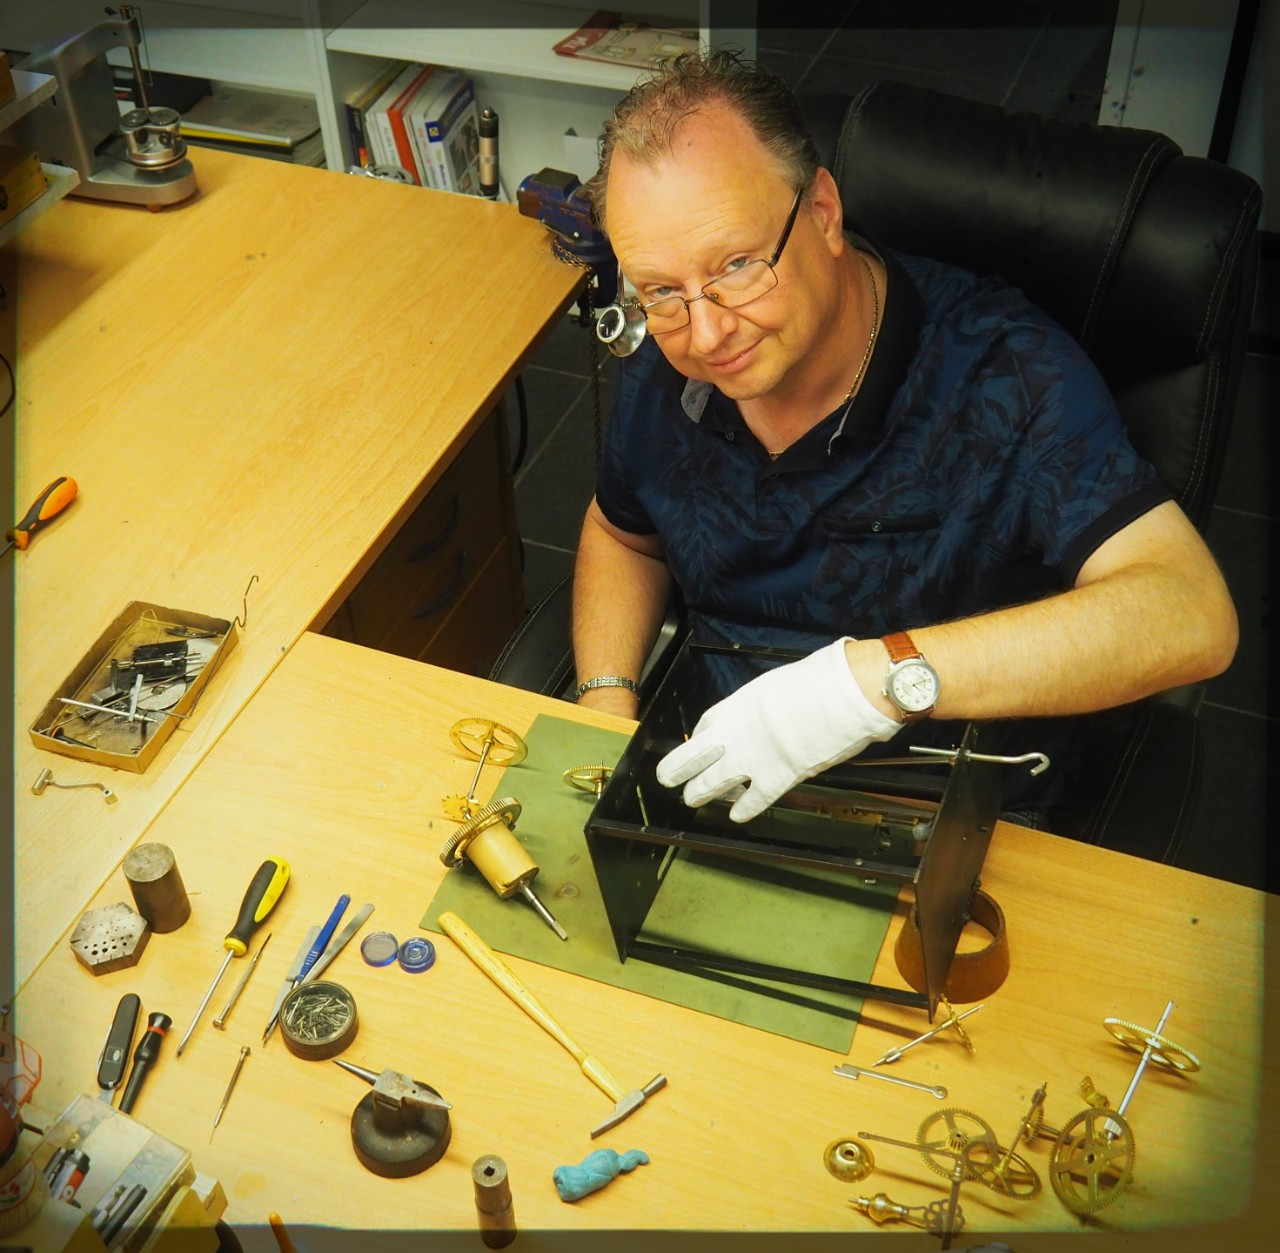 Comtoise reparatie - clock repair Netherlands